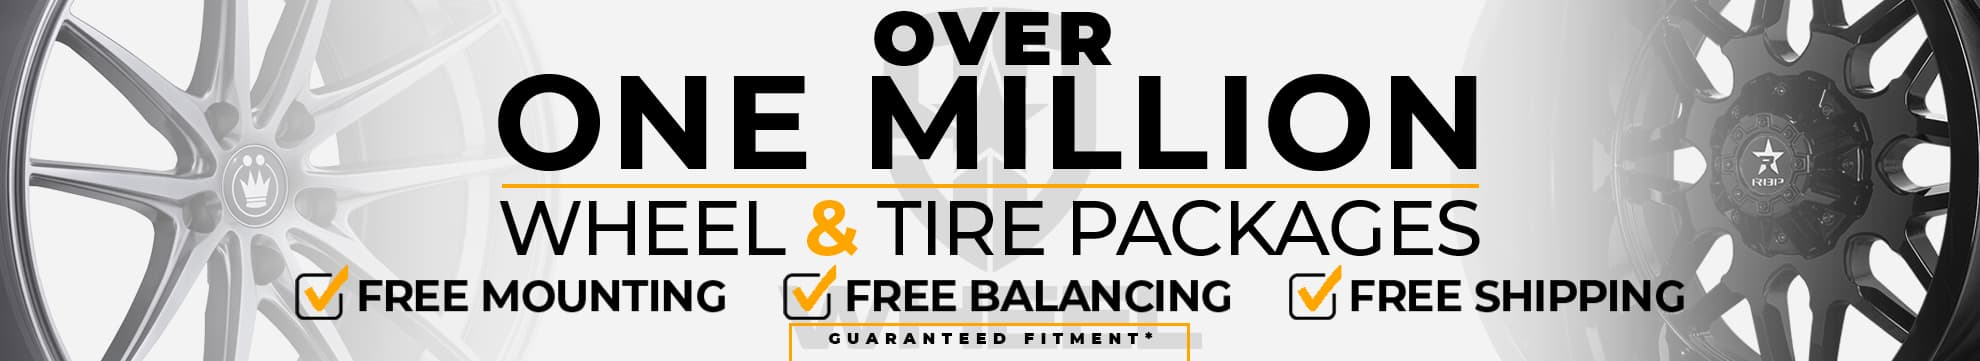 Over 1 million wheel & tire packages